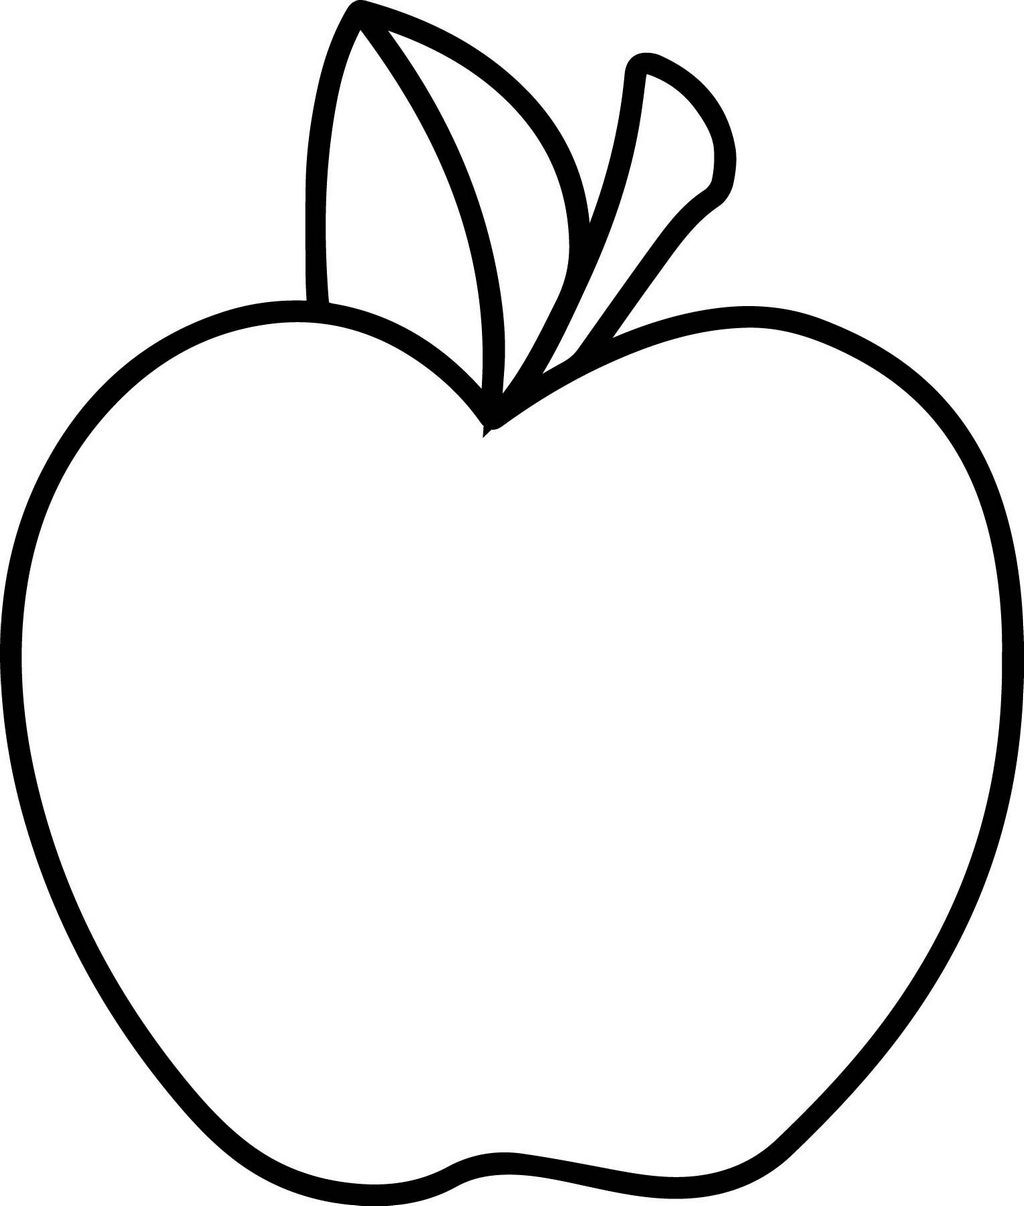 coloring pages apple apple with pattern coloring page free printable coloring apple coloring pages